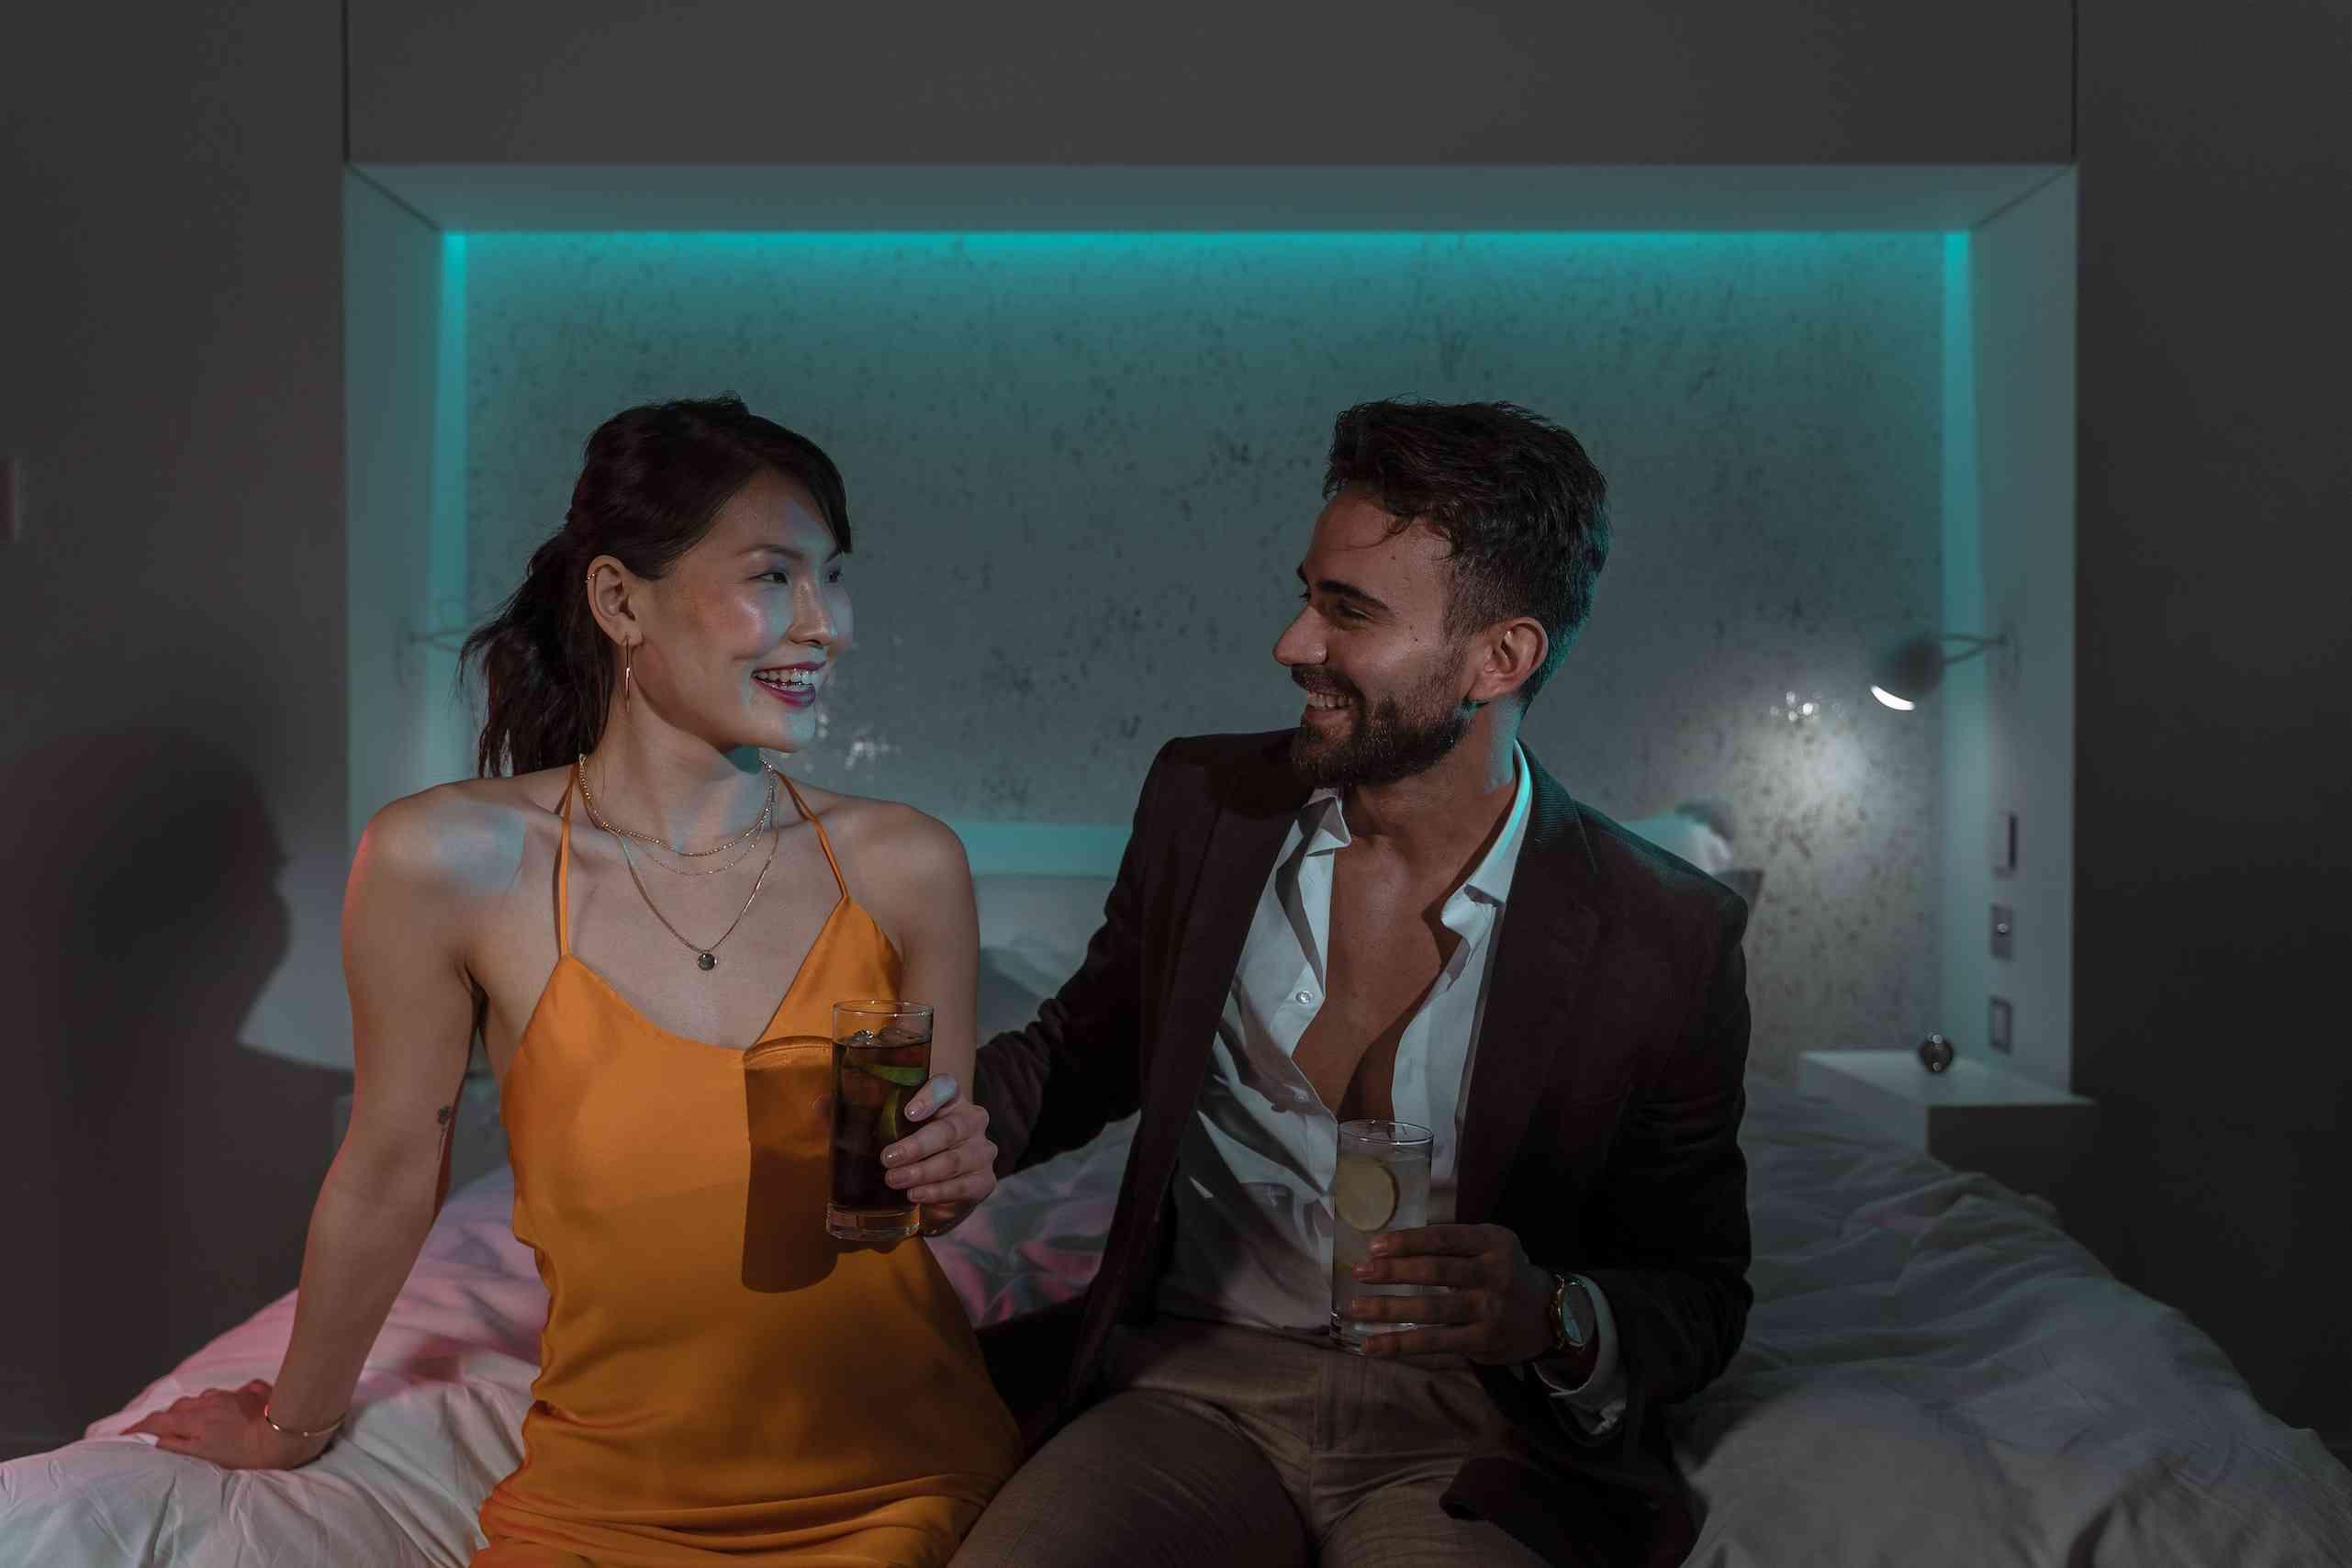 man and woman have drinks on bed